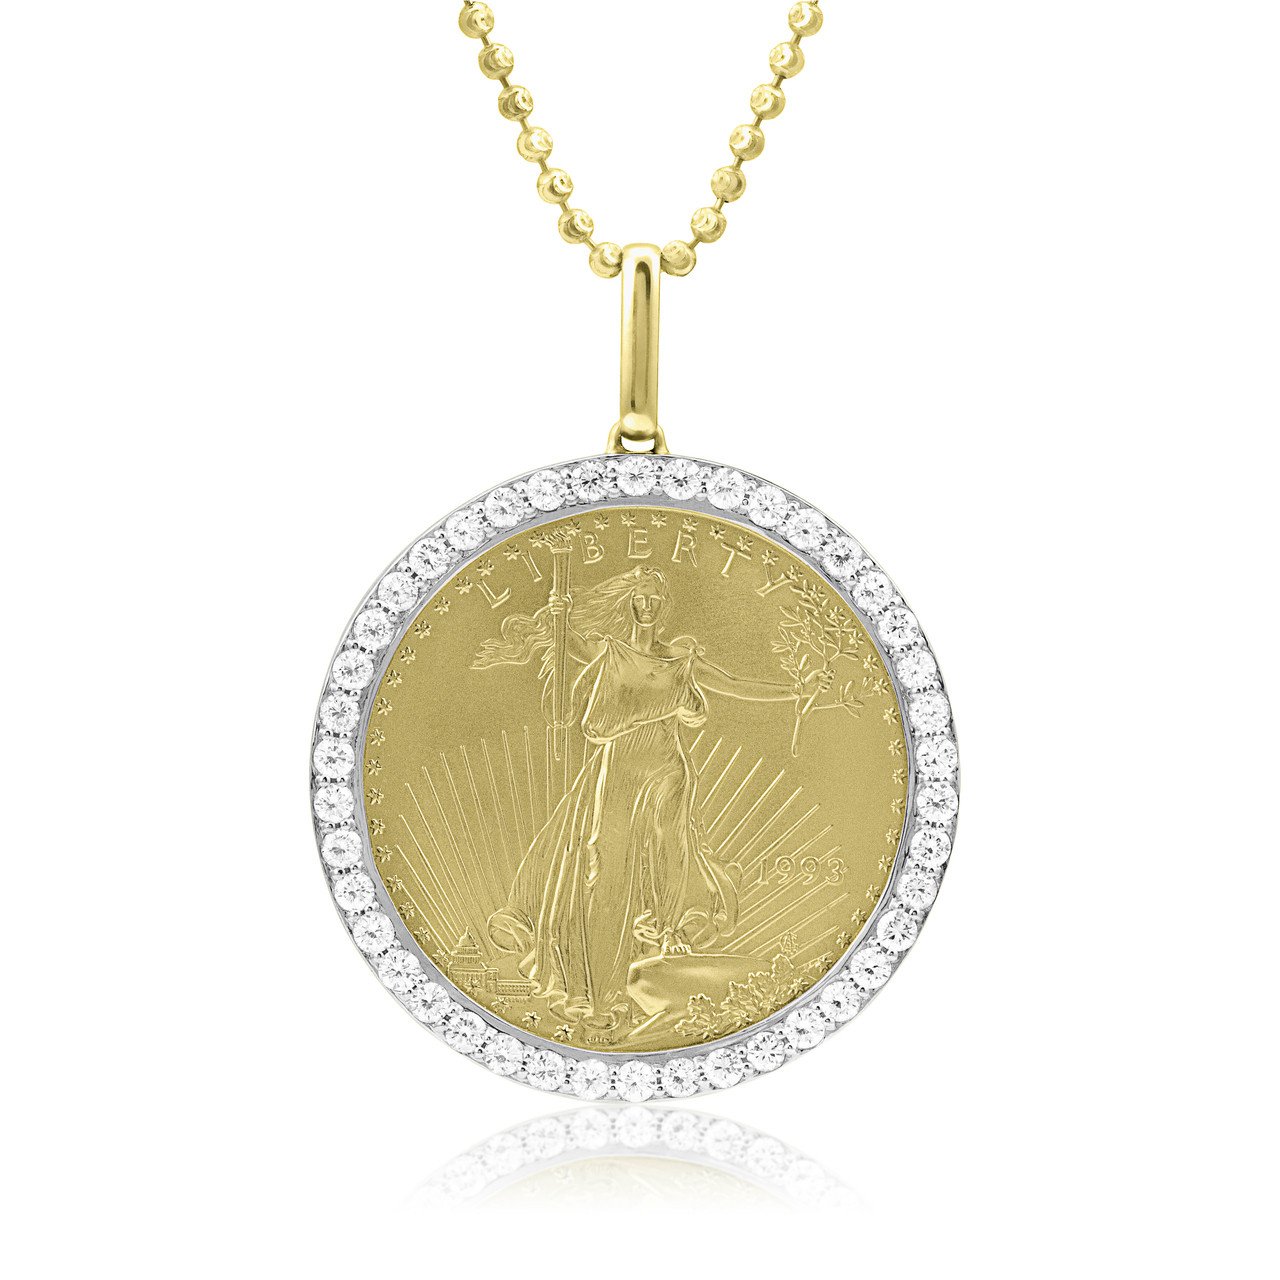 b2a27cd4459a2 10k Yellow Gold 2.07ct Diamond Pure Coin Pendant